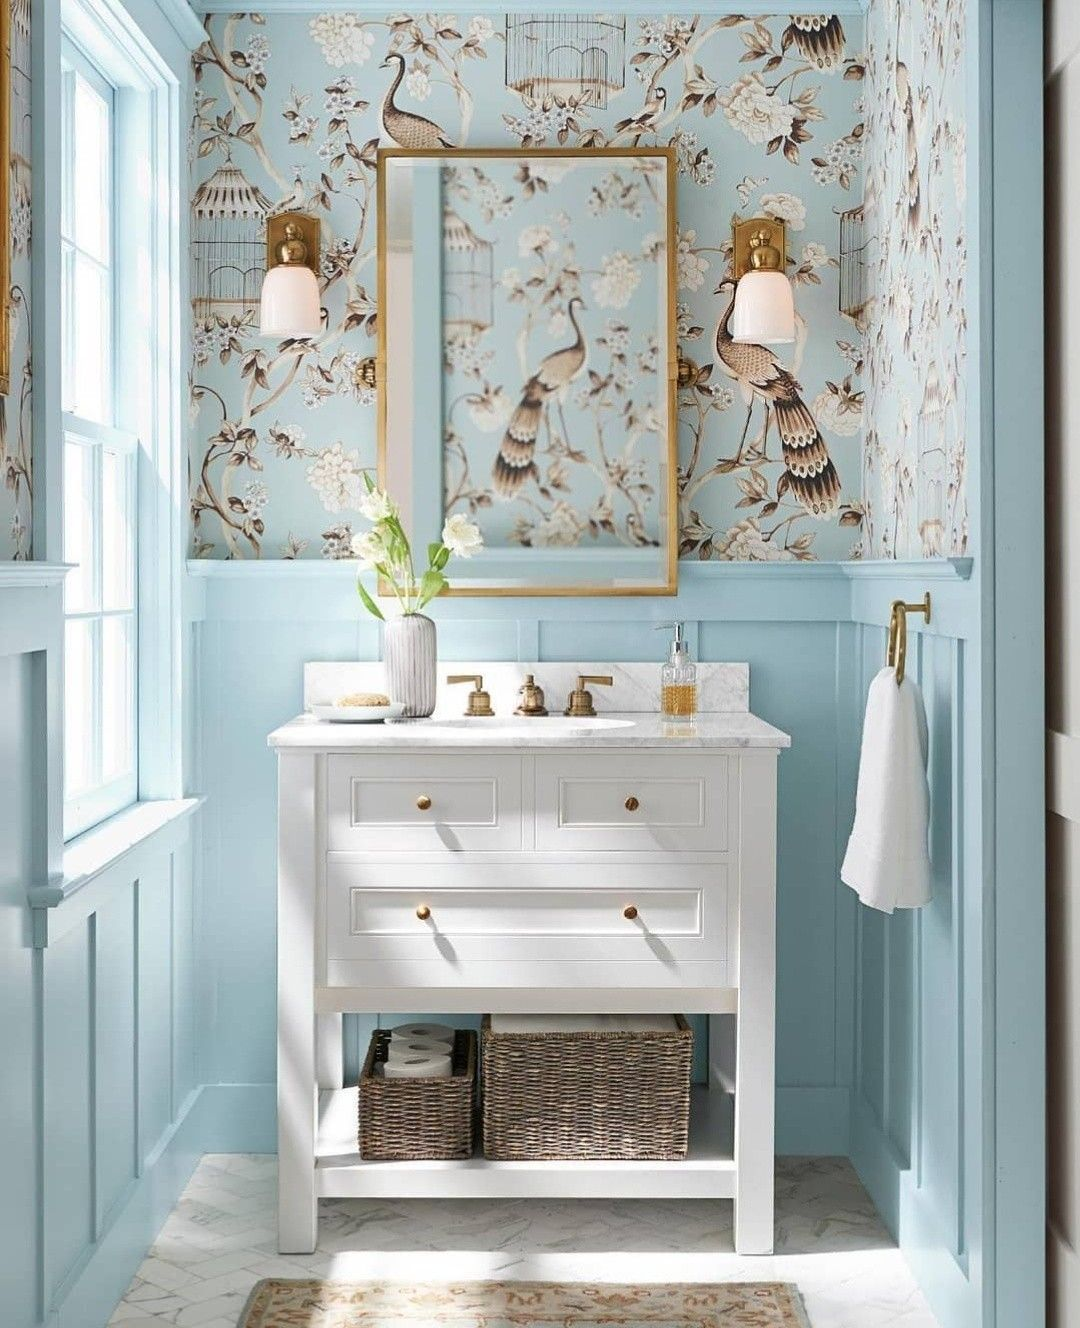 Duck's egg blue chinoiserie wallpaper to tone with the